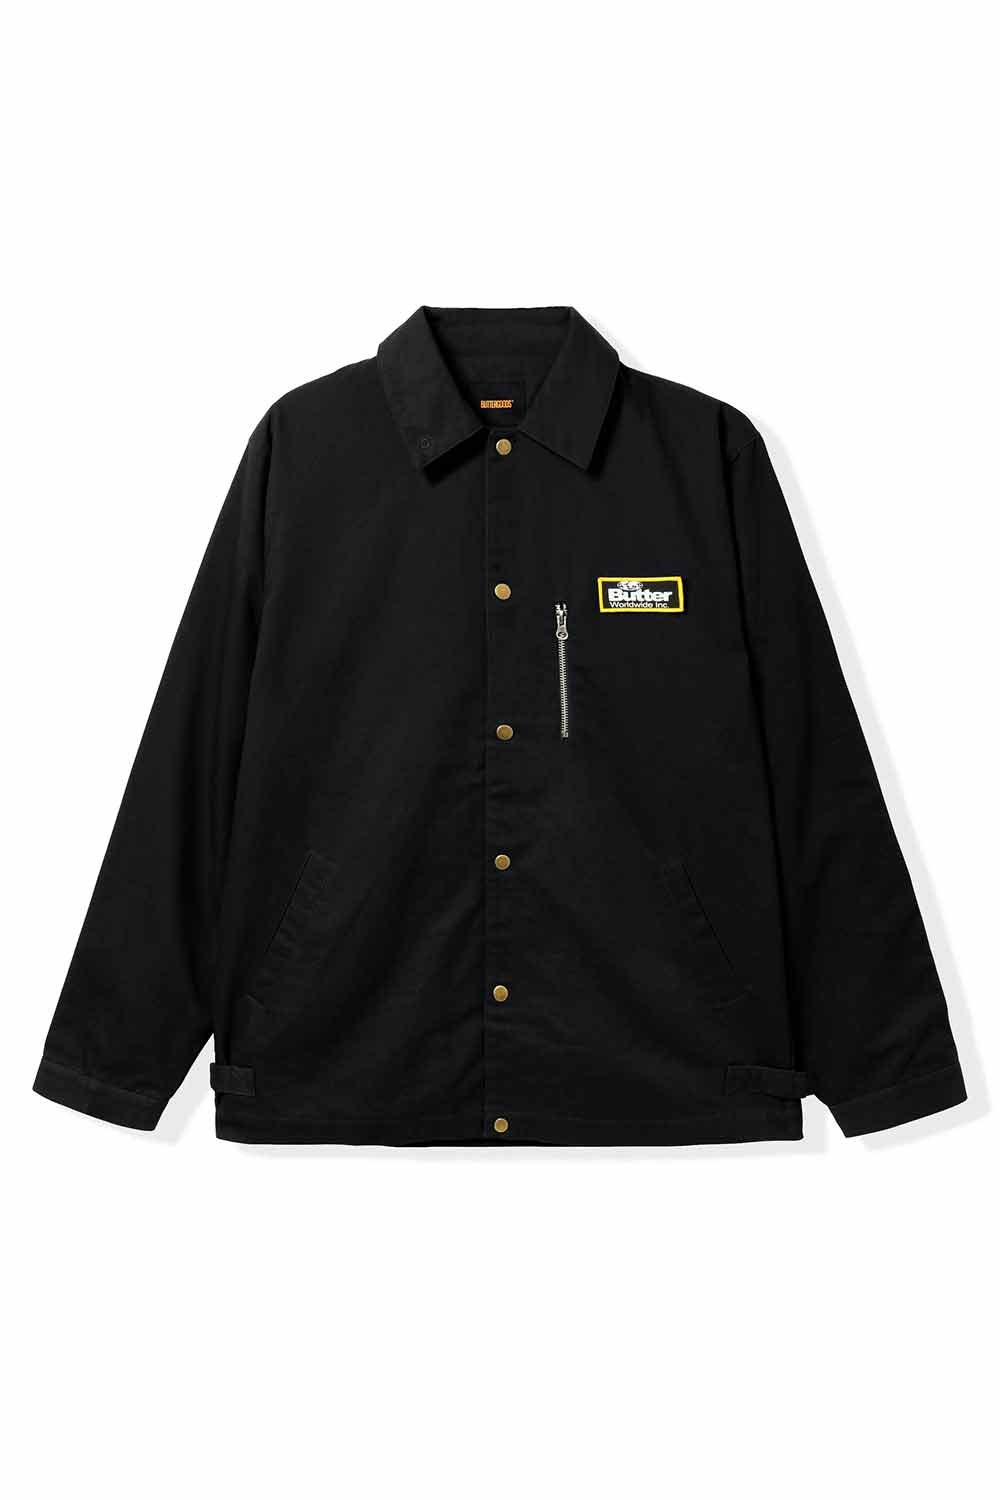 Butter Goods Campbell Jacket - Black | Shop Butter Goods Online